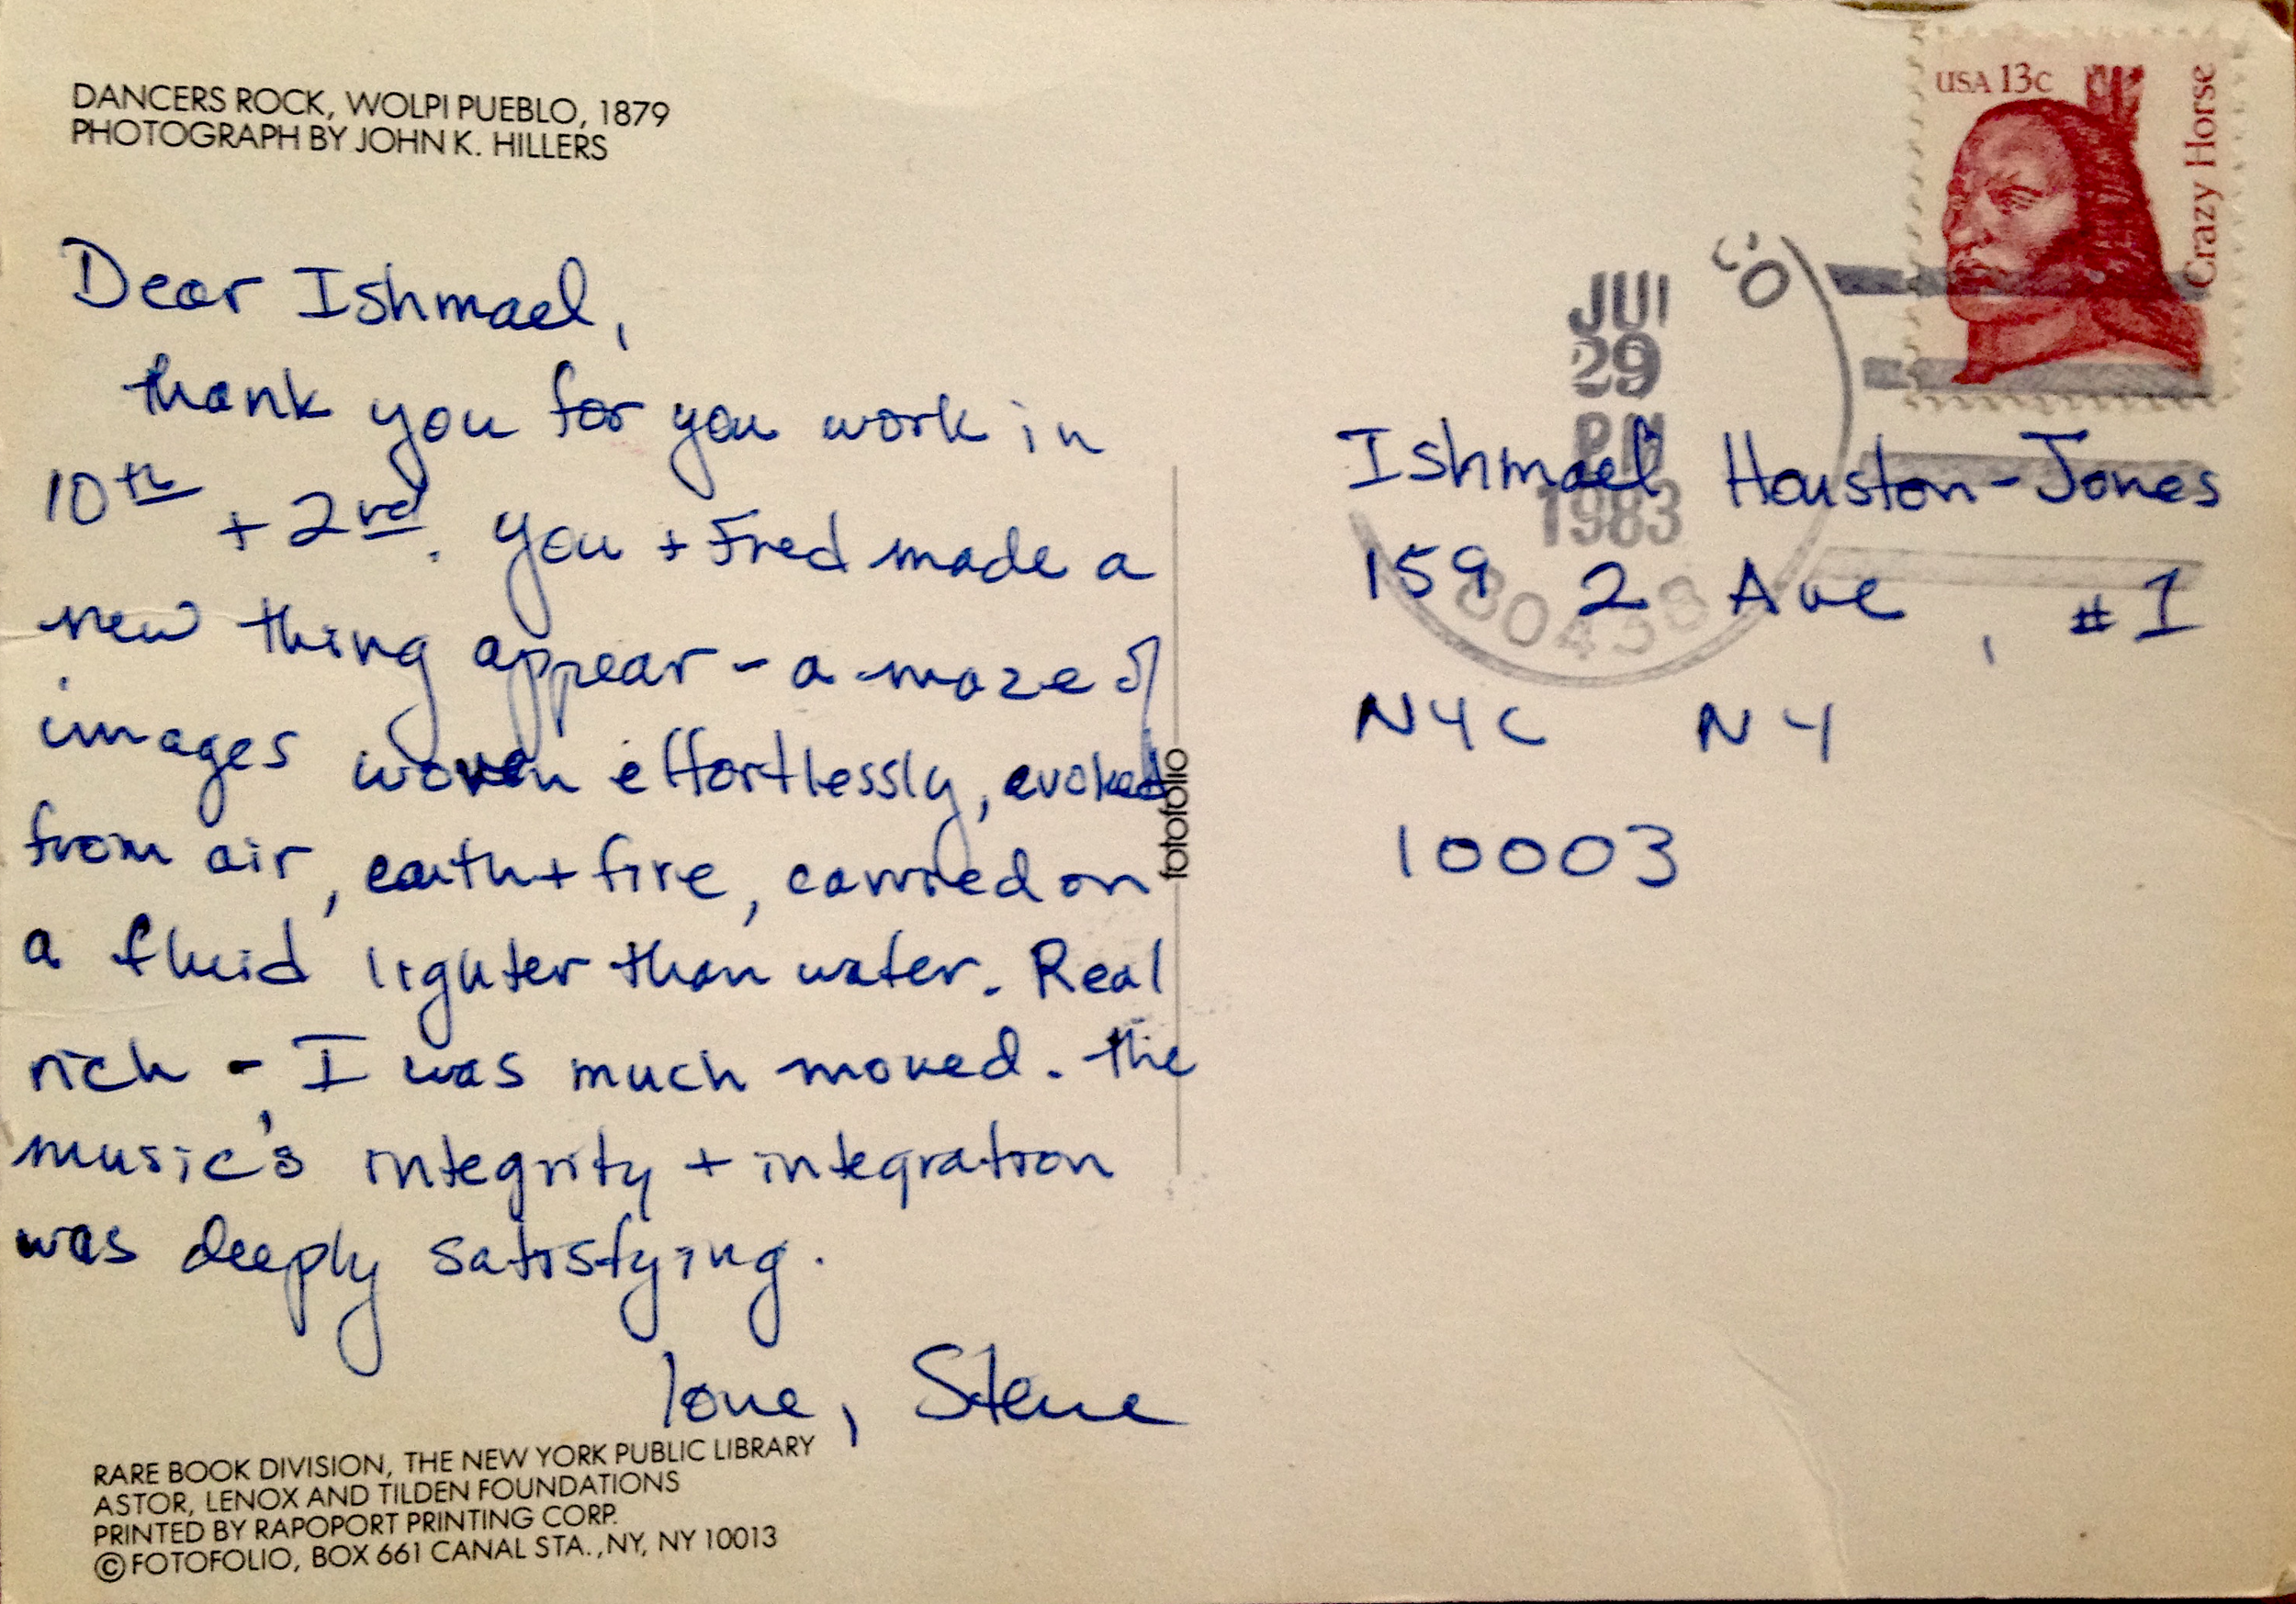 "Steve Paxton sent this postcard on June 29, 1983 after Fred Holland and Ishmael Houston-Jones had performed their  Untitled Duet , sometimes called  Oo-Ga-La  on the ""Partners"" program at Contact at 10th and 2nd Festival at Danspace Project."